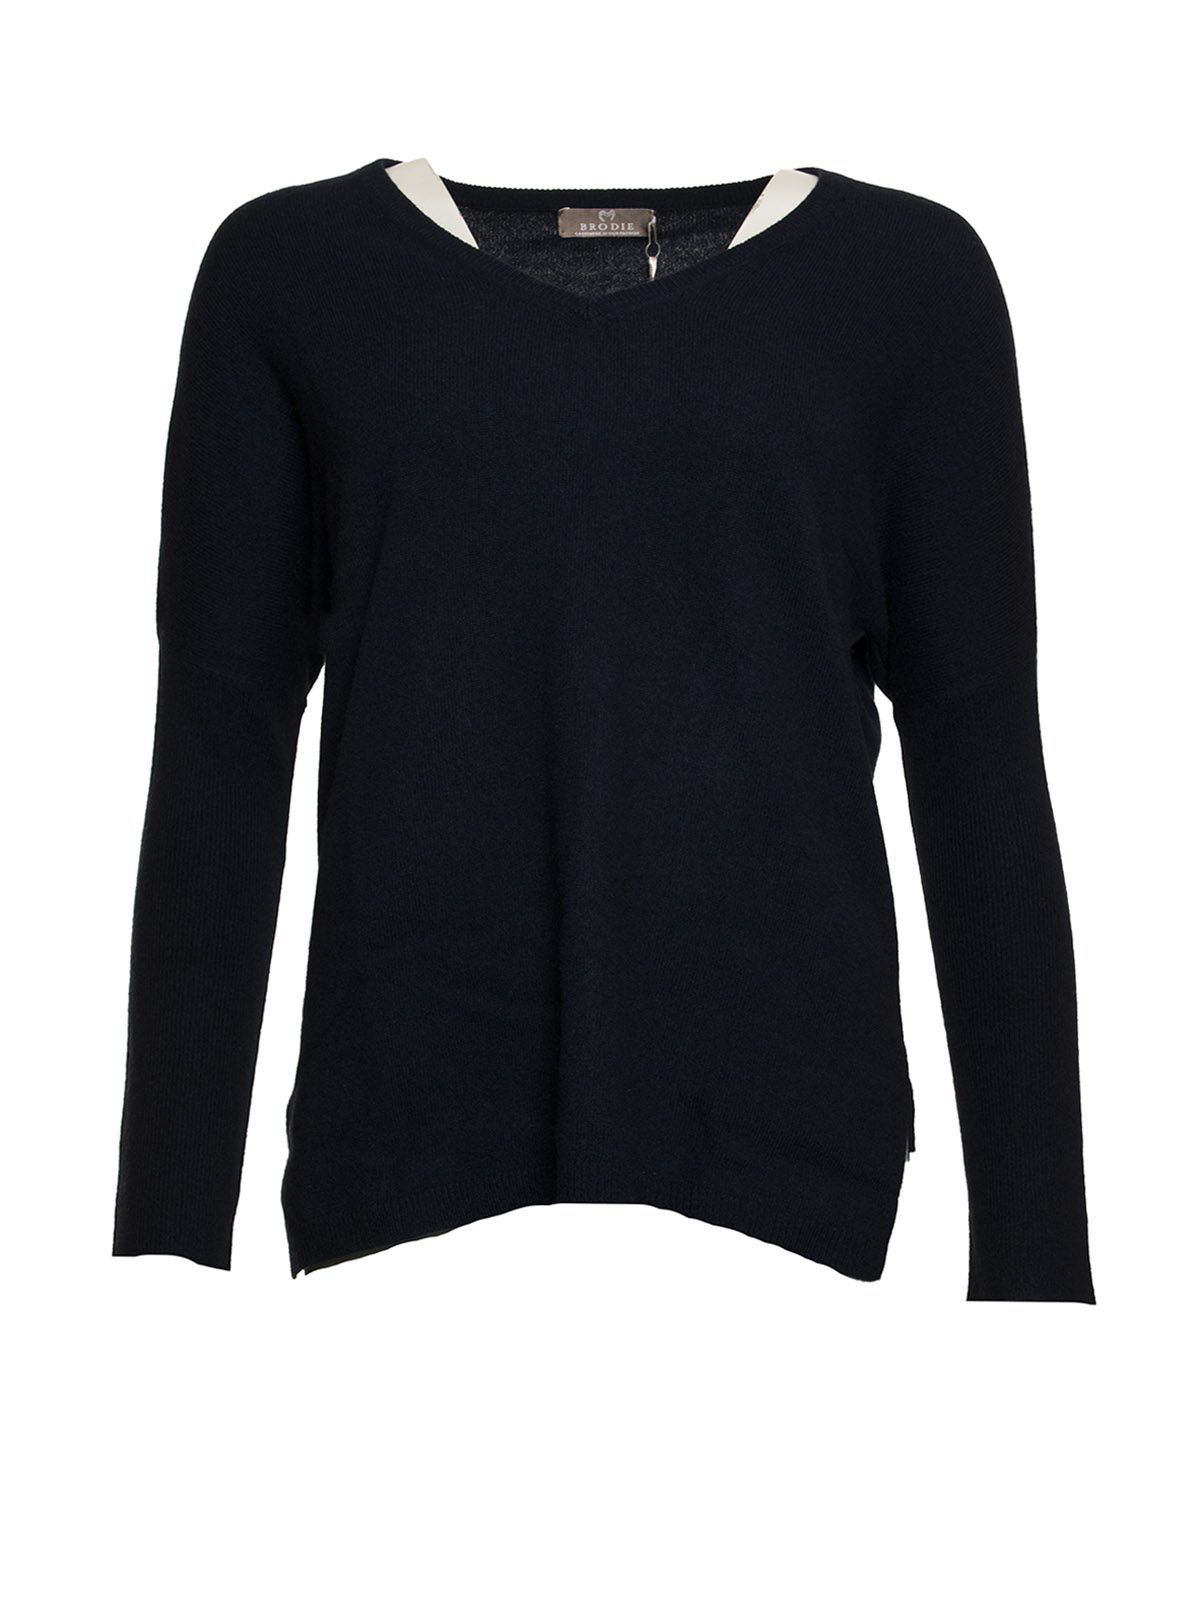 a59e456c326 Miss Darcey Jumper Brodie fine cashmere Women's clothing Women's knitwear